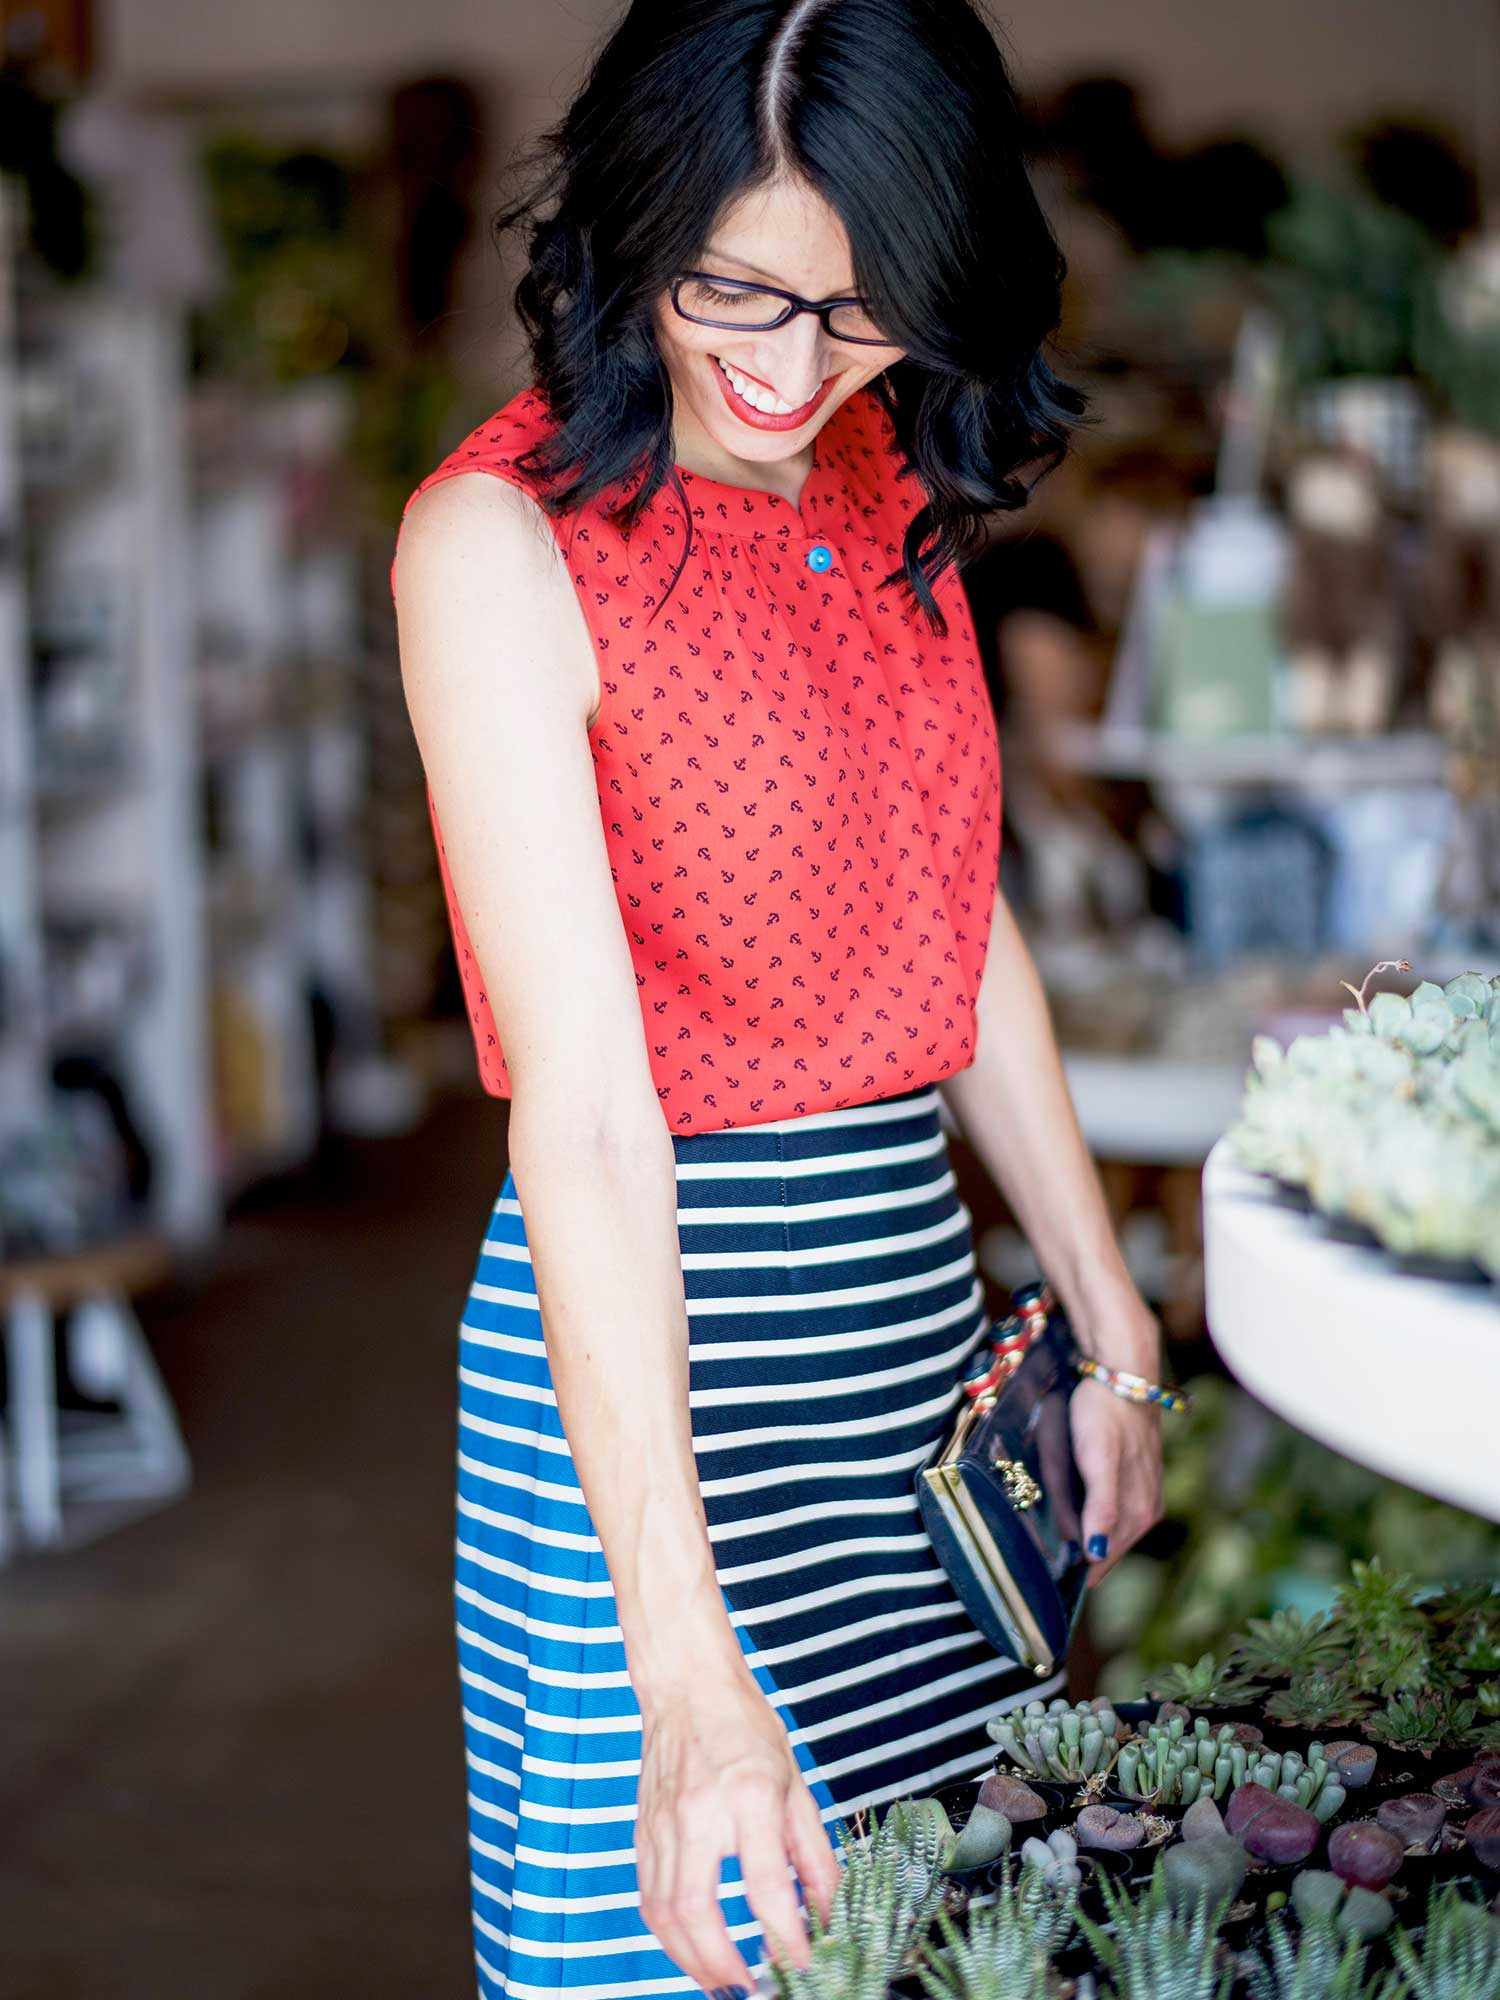 jenna-pilant-san-diego-fashion-blogger-lucky-little-mustardseed-how-to-wear-nautical-clothing-year-around-5